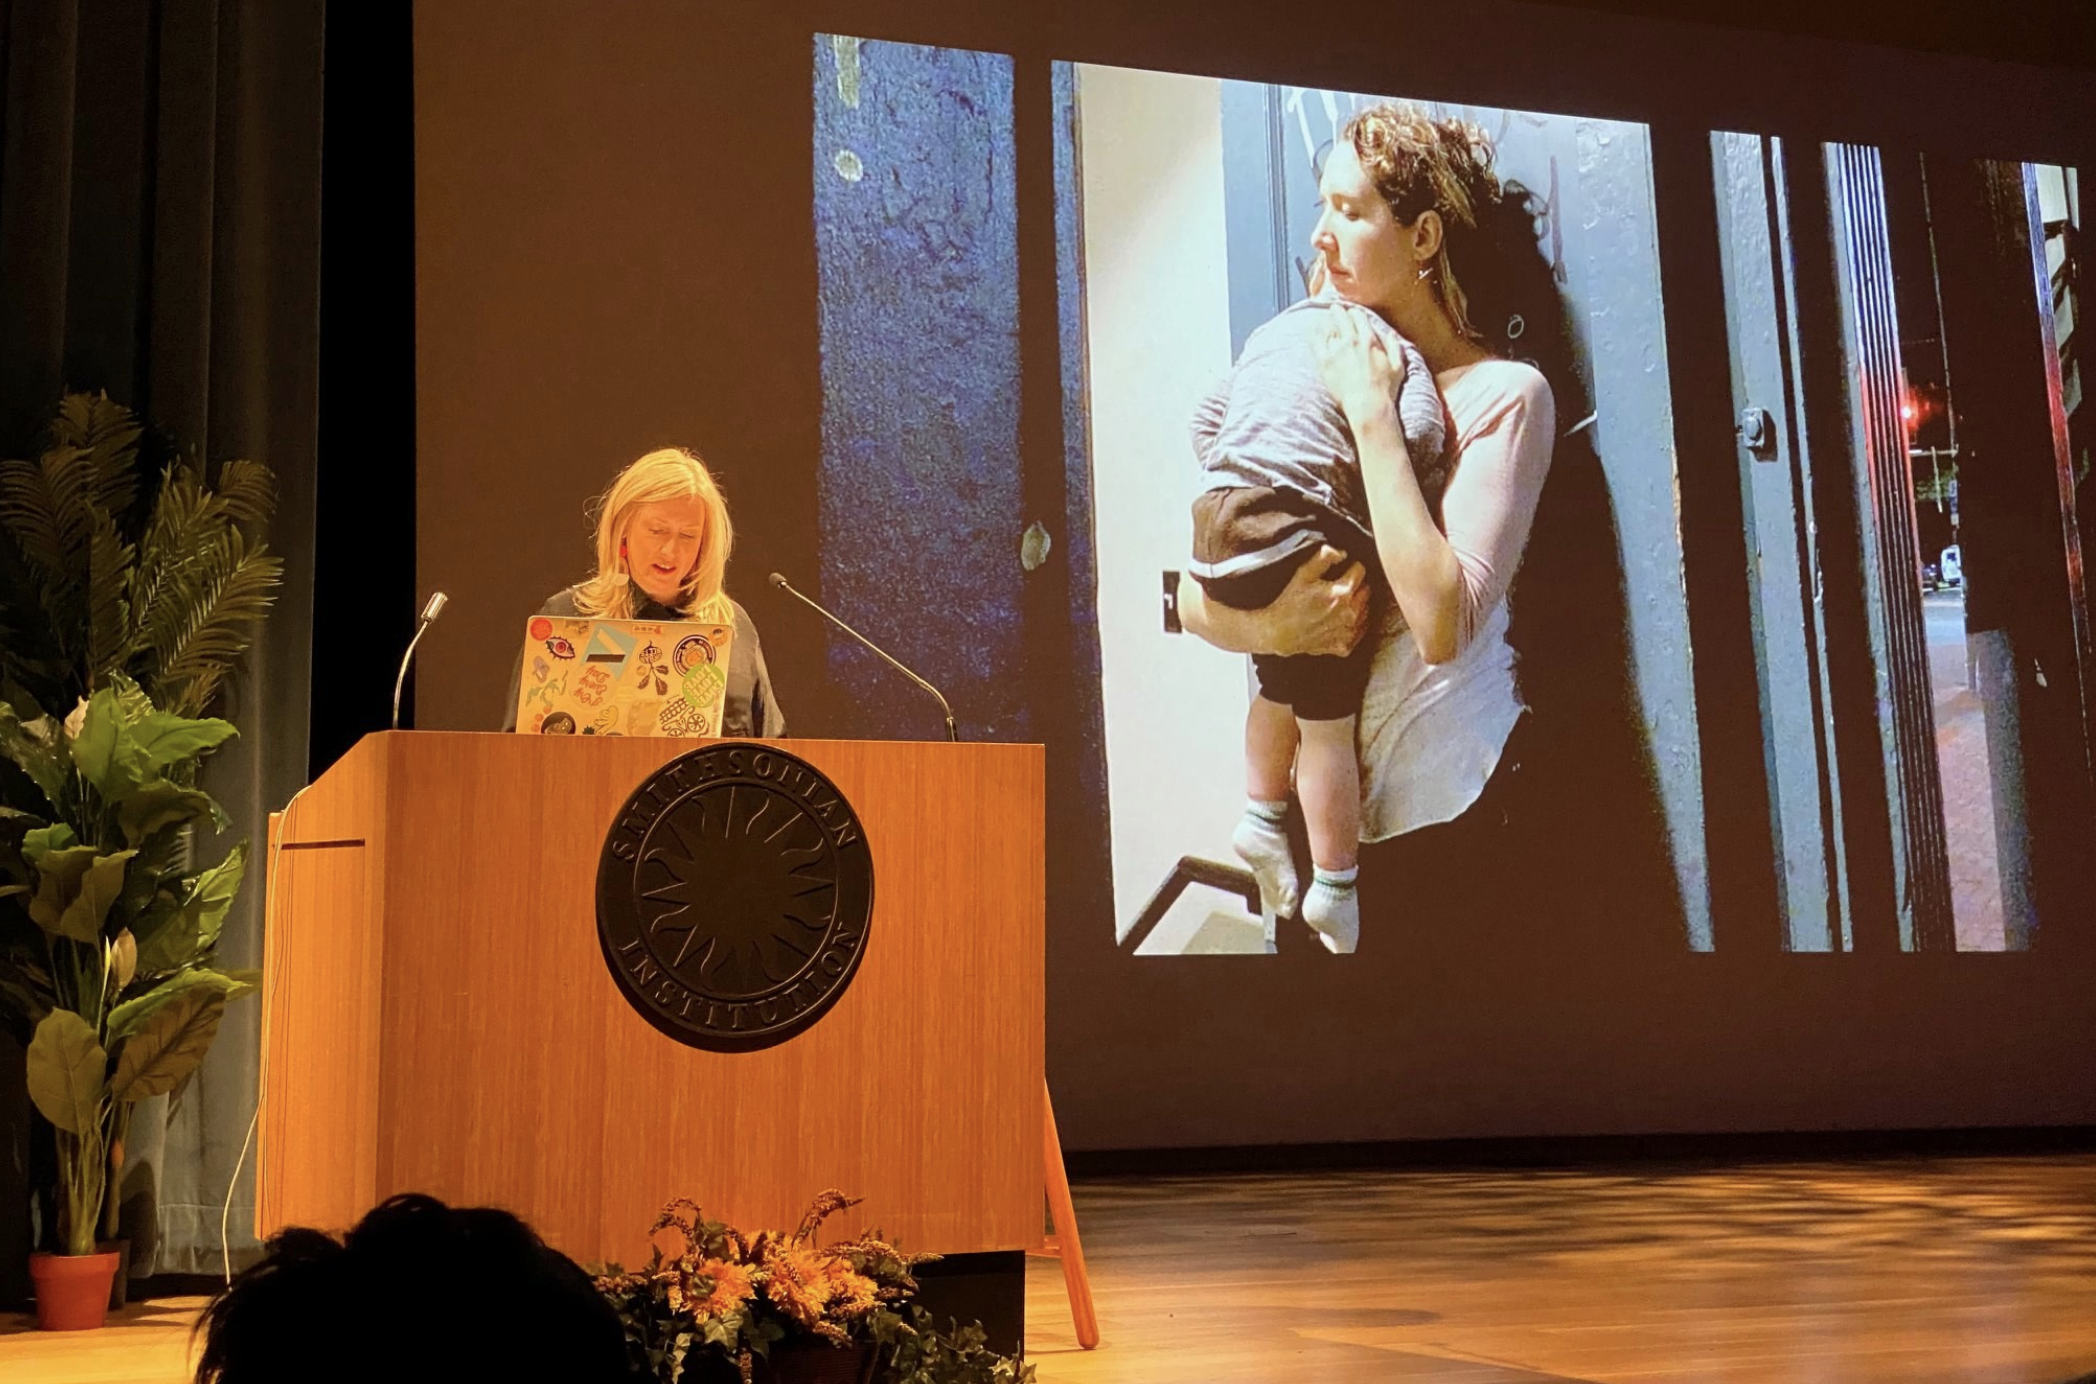 Mary Louise Schumacher lecturing at the Smithsonian American Art Museum in 2019. Photo by Ken Hanson.